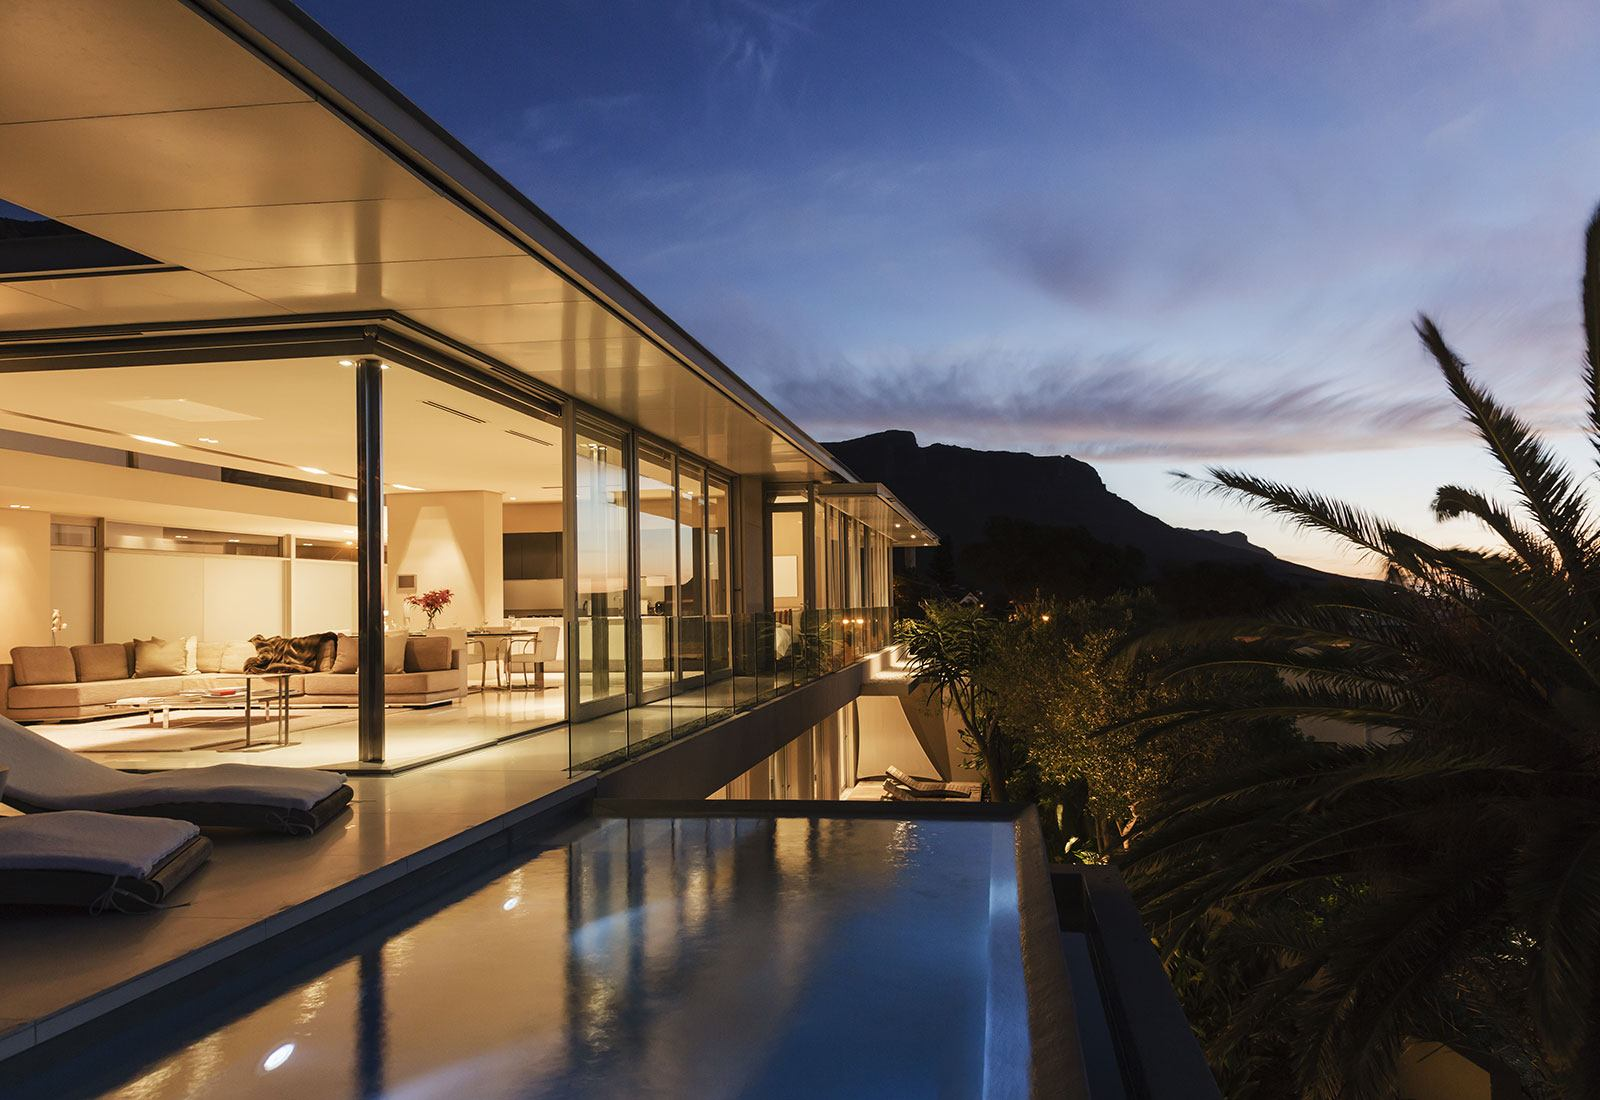 Modern building with an outside pool